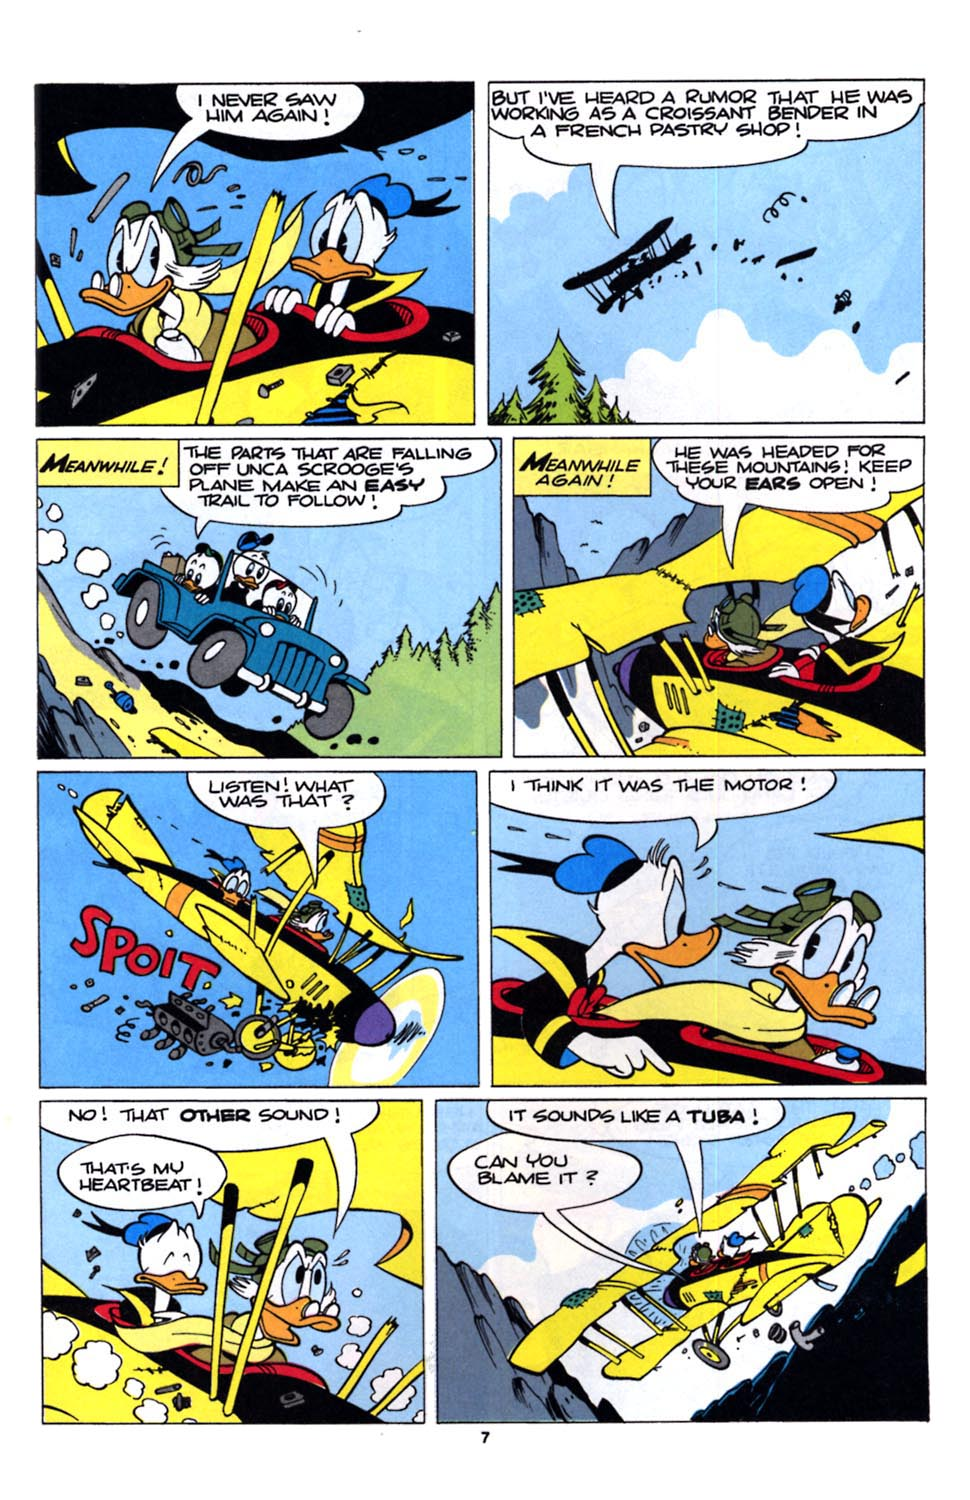 inefree.com/uncle-scrooge #162 - English 9